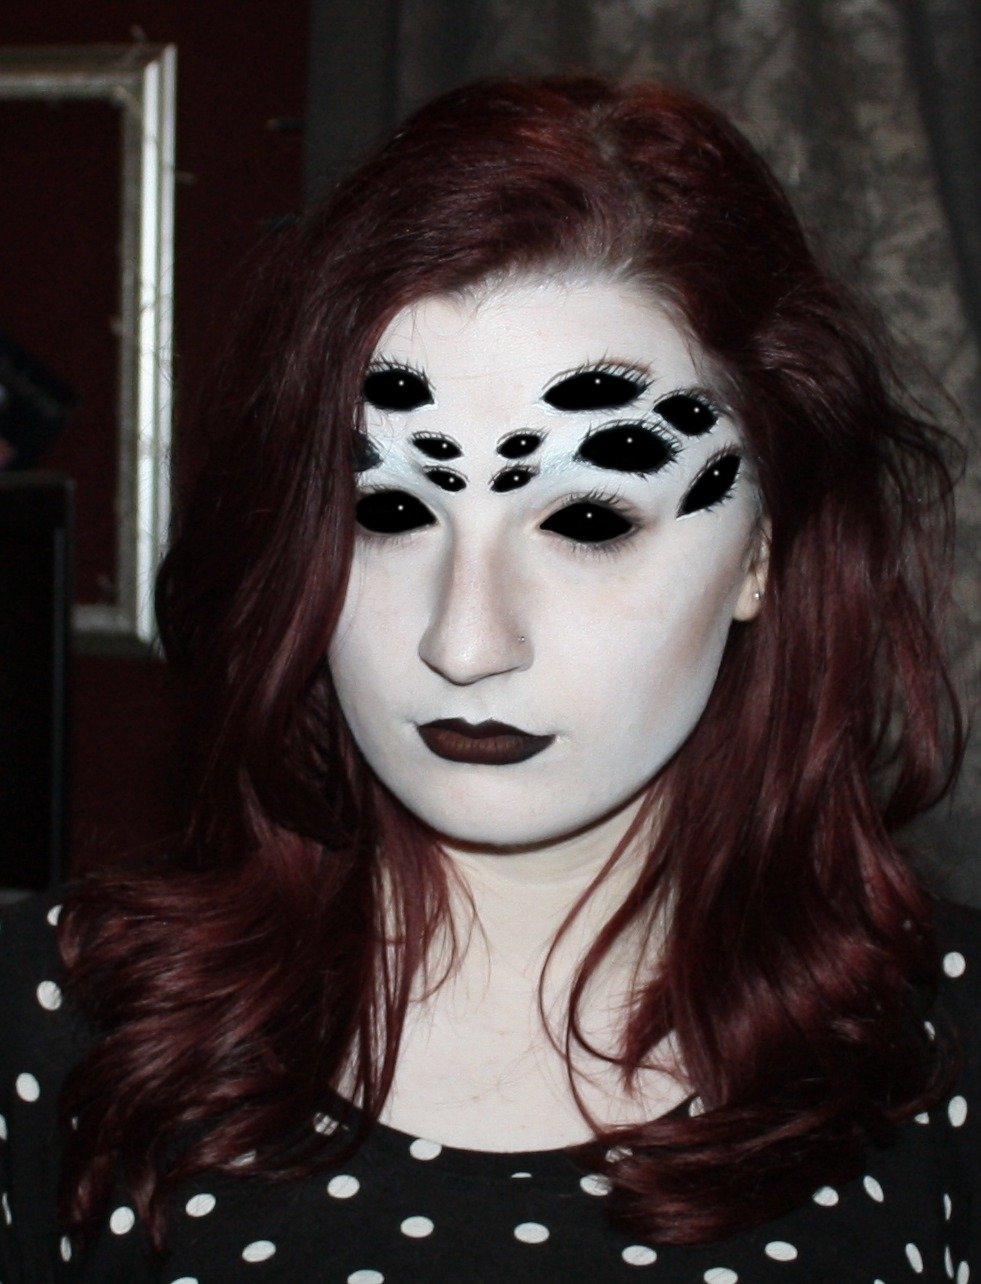 creepy spider eyes make-up design perfect for halloween